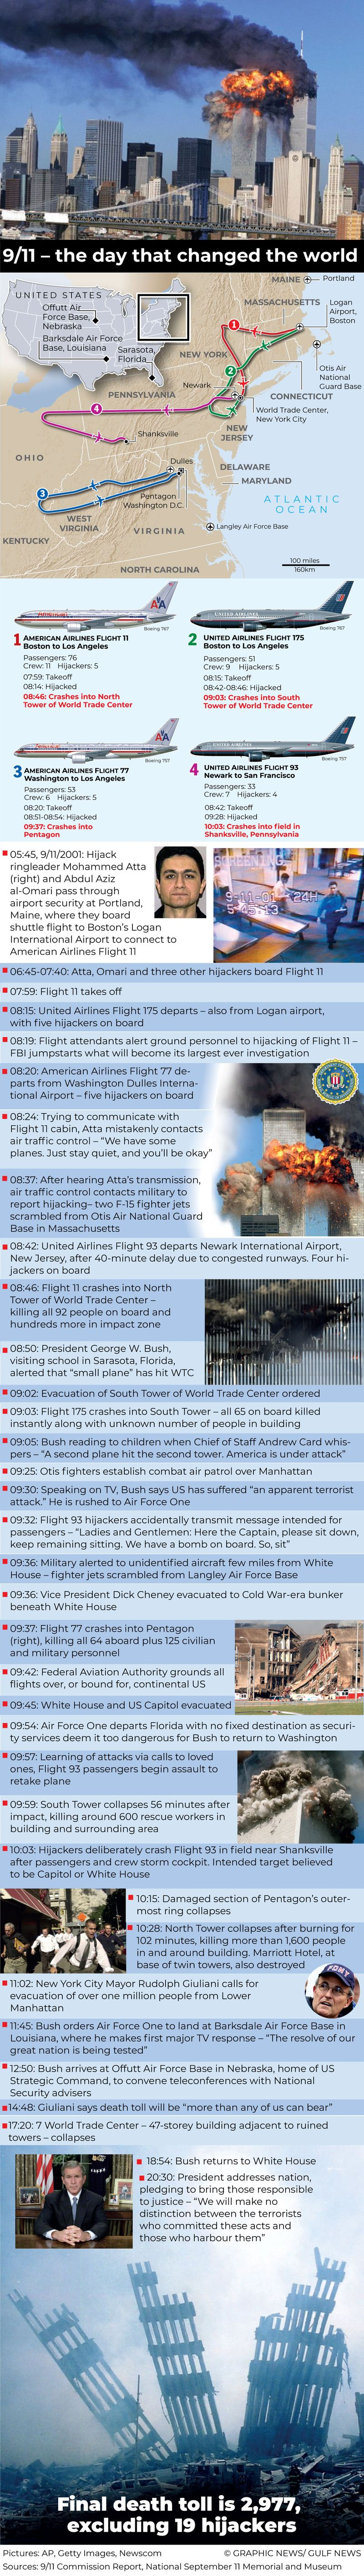 Infographic: 9/11 — the day that changed the world